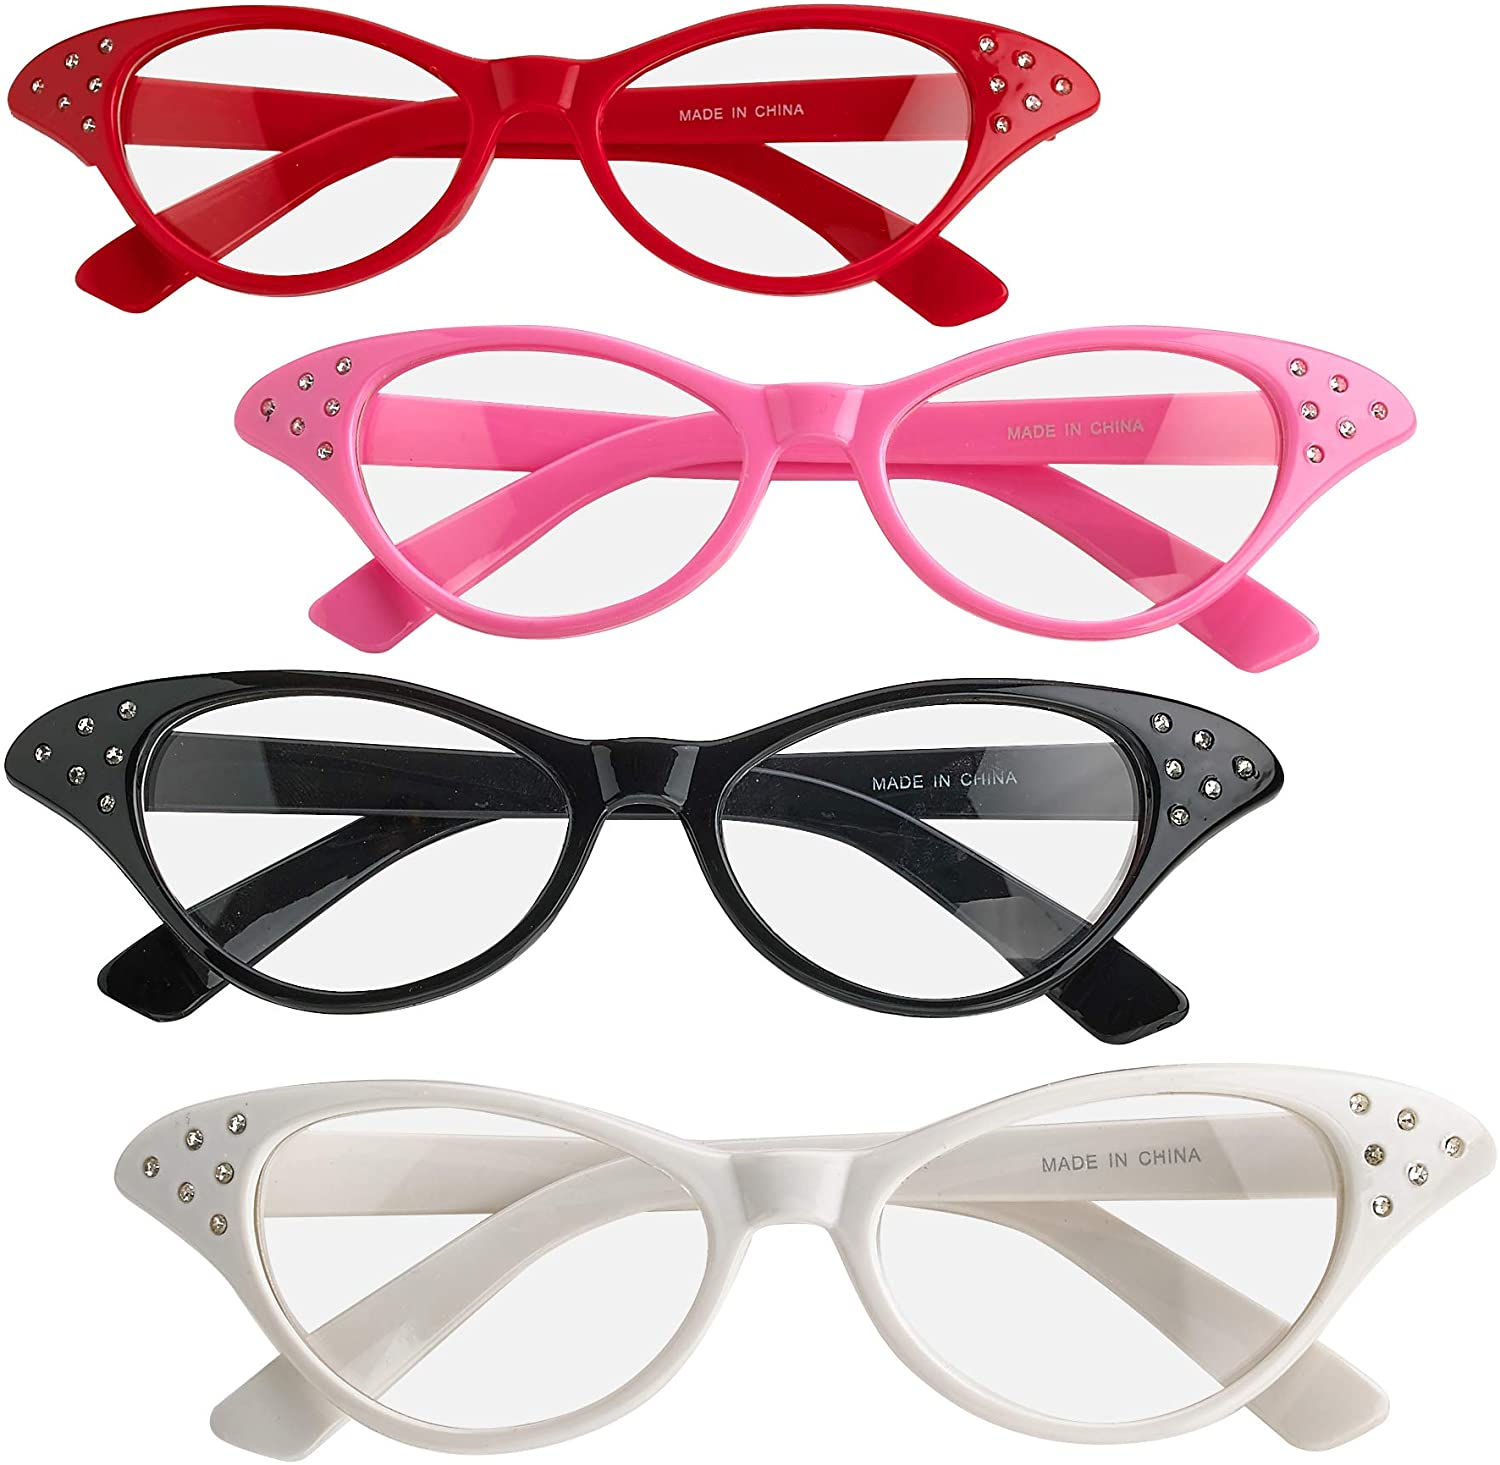 Pack Of 4 Vintage Retro 50s 60s Inspired Clear Non - Prescription Costume Cateye Sunglasses For Women & Kids By Bedwina